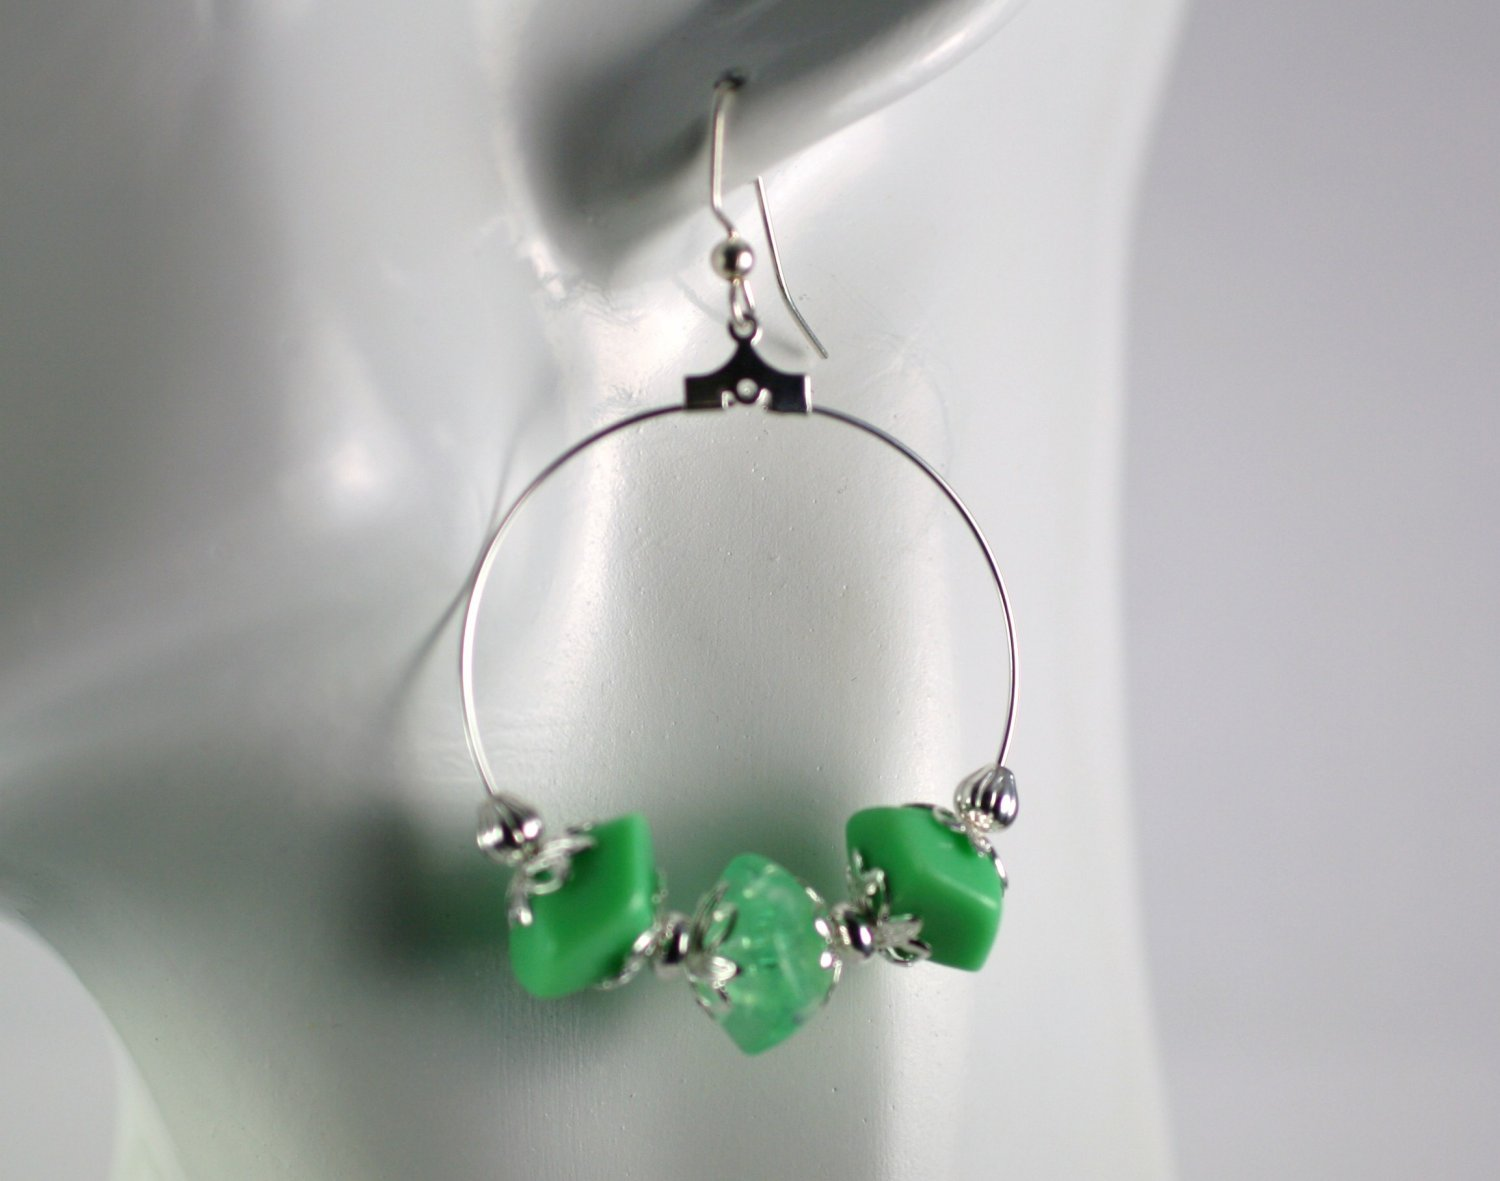 Silver Hoop Earrings with Green Vintage Beads 1.5 in.  Handcrafted Jewelry